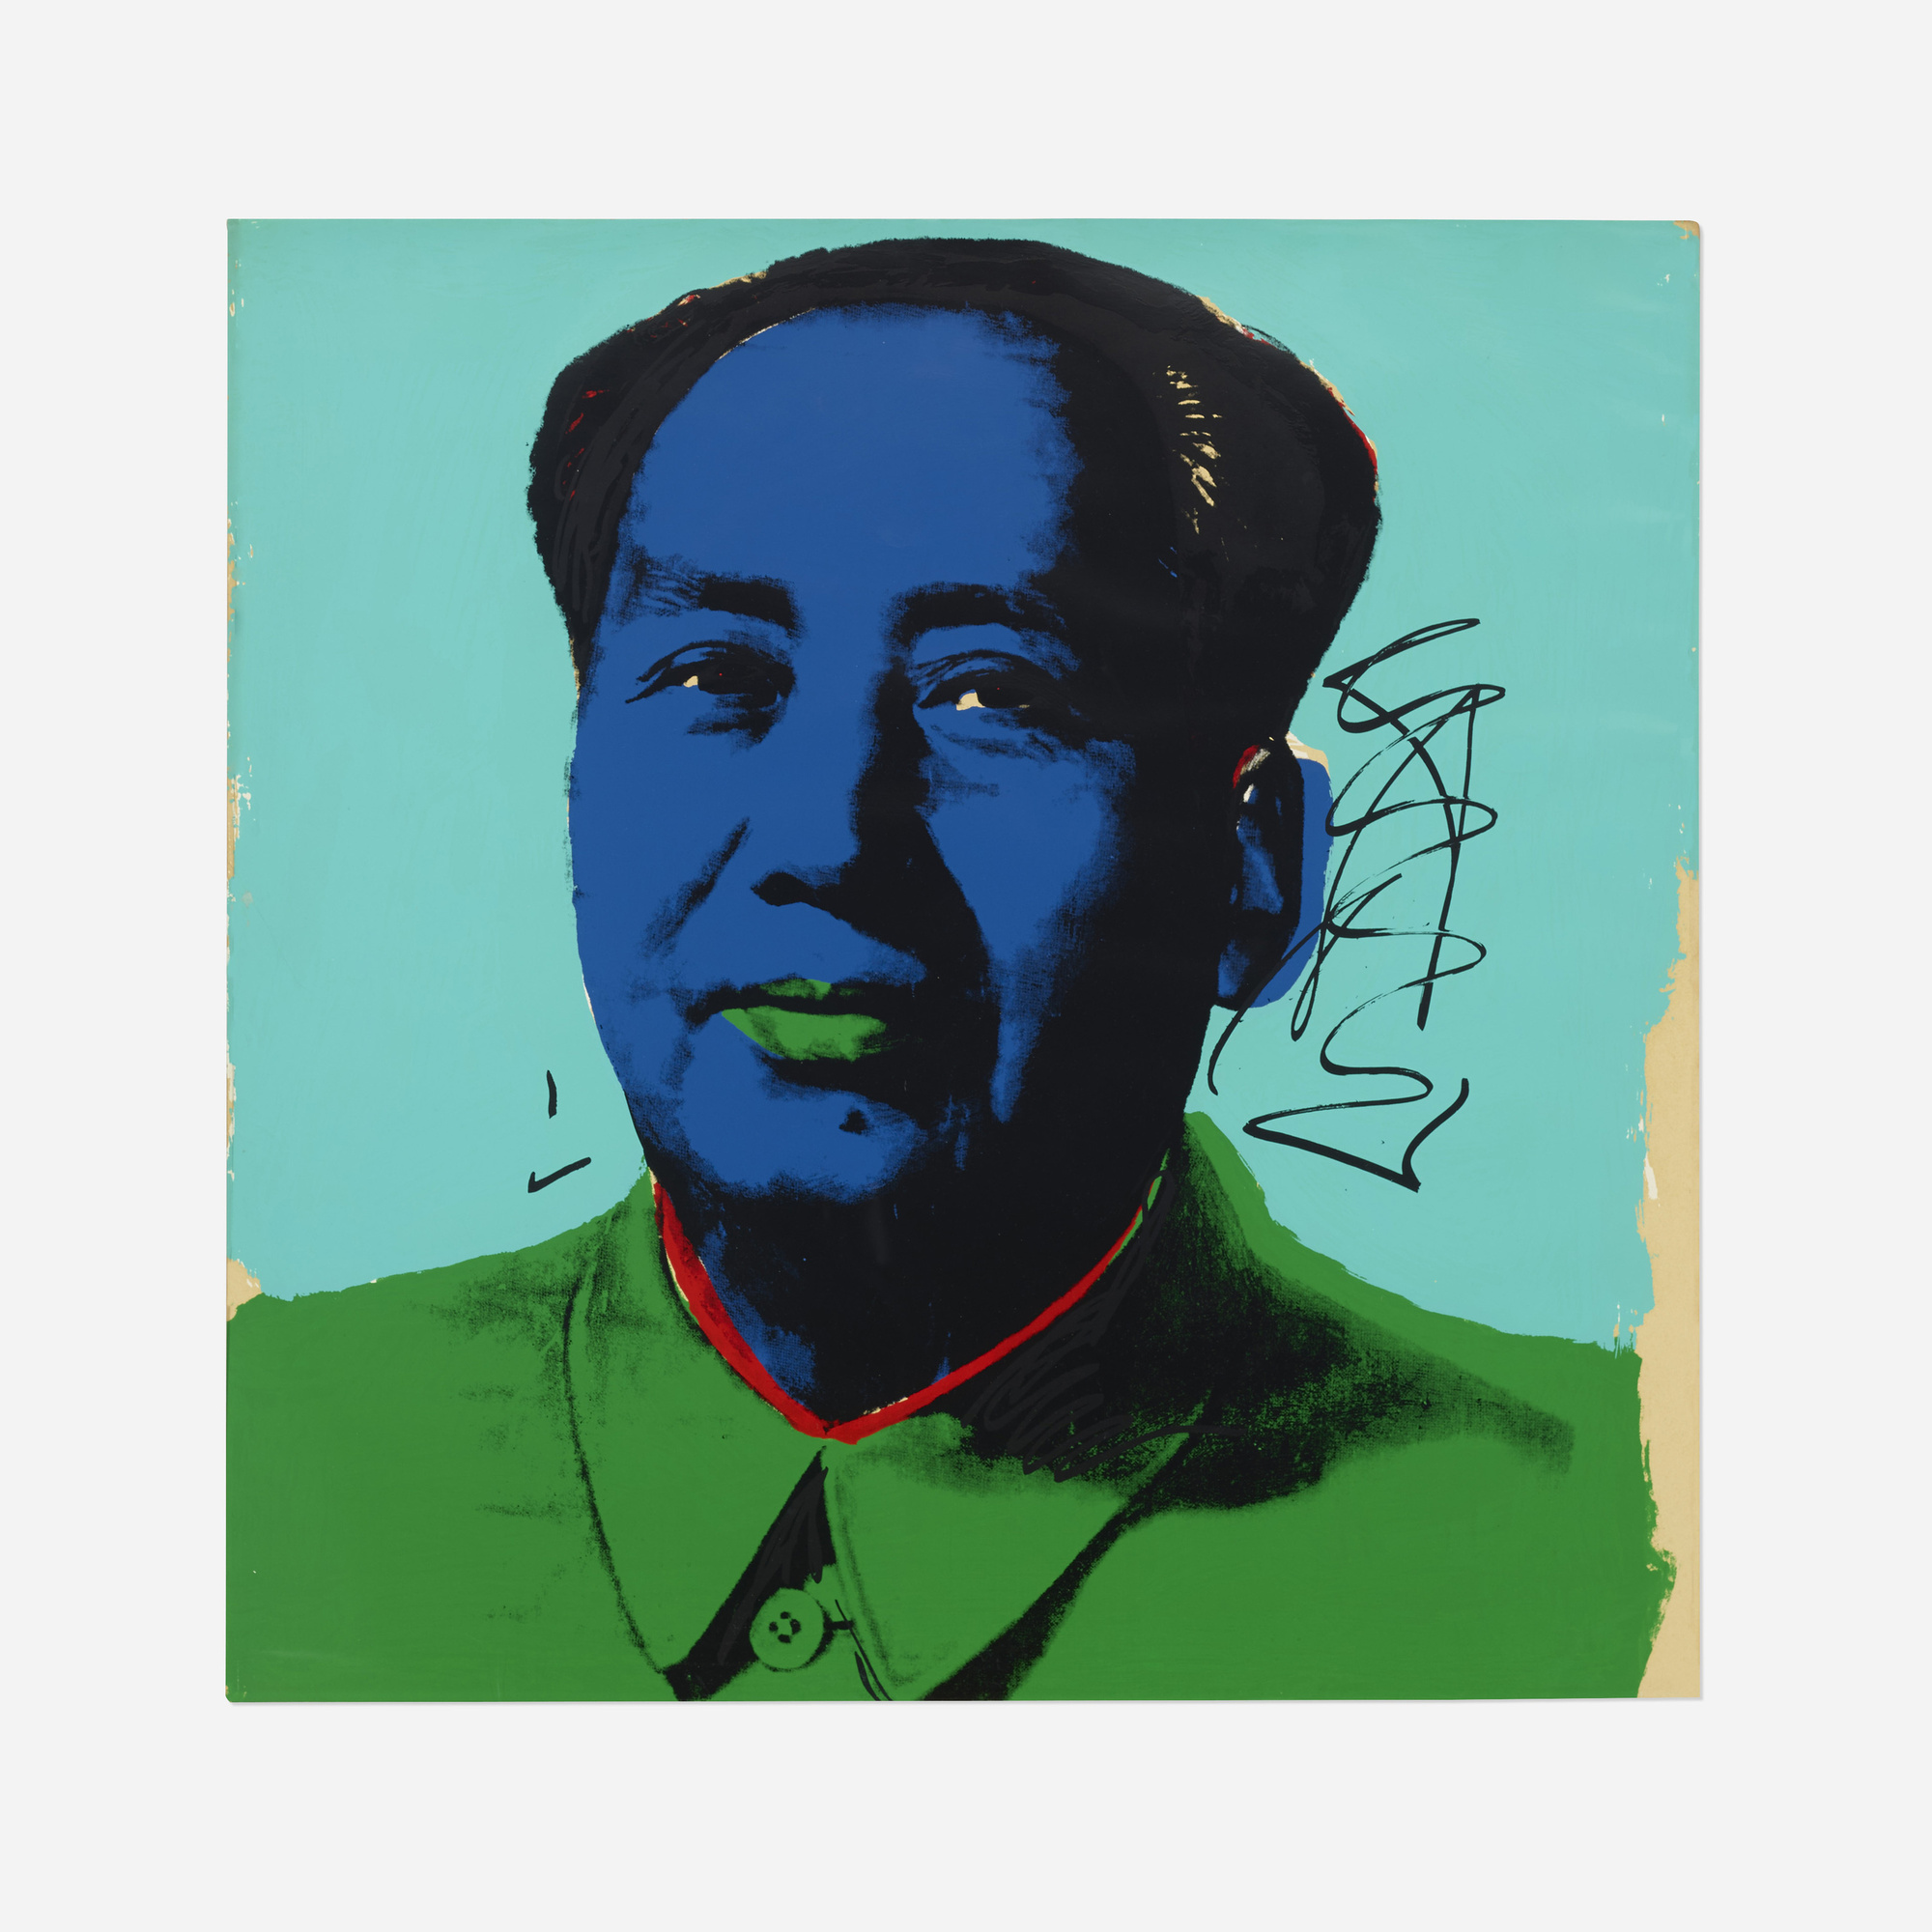 121: Andy Warhol / Mao (1 of 2)